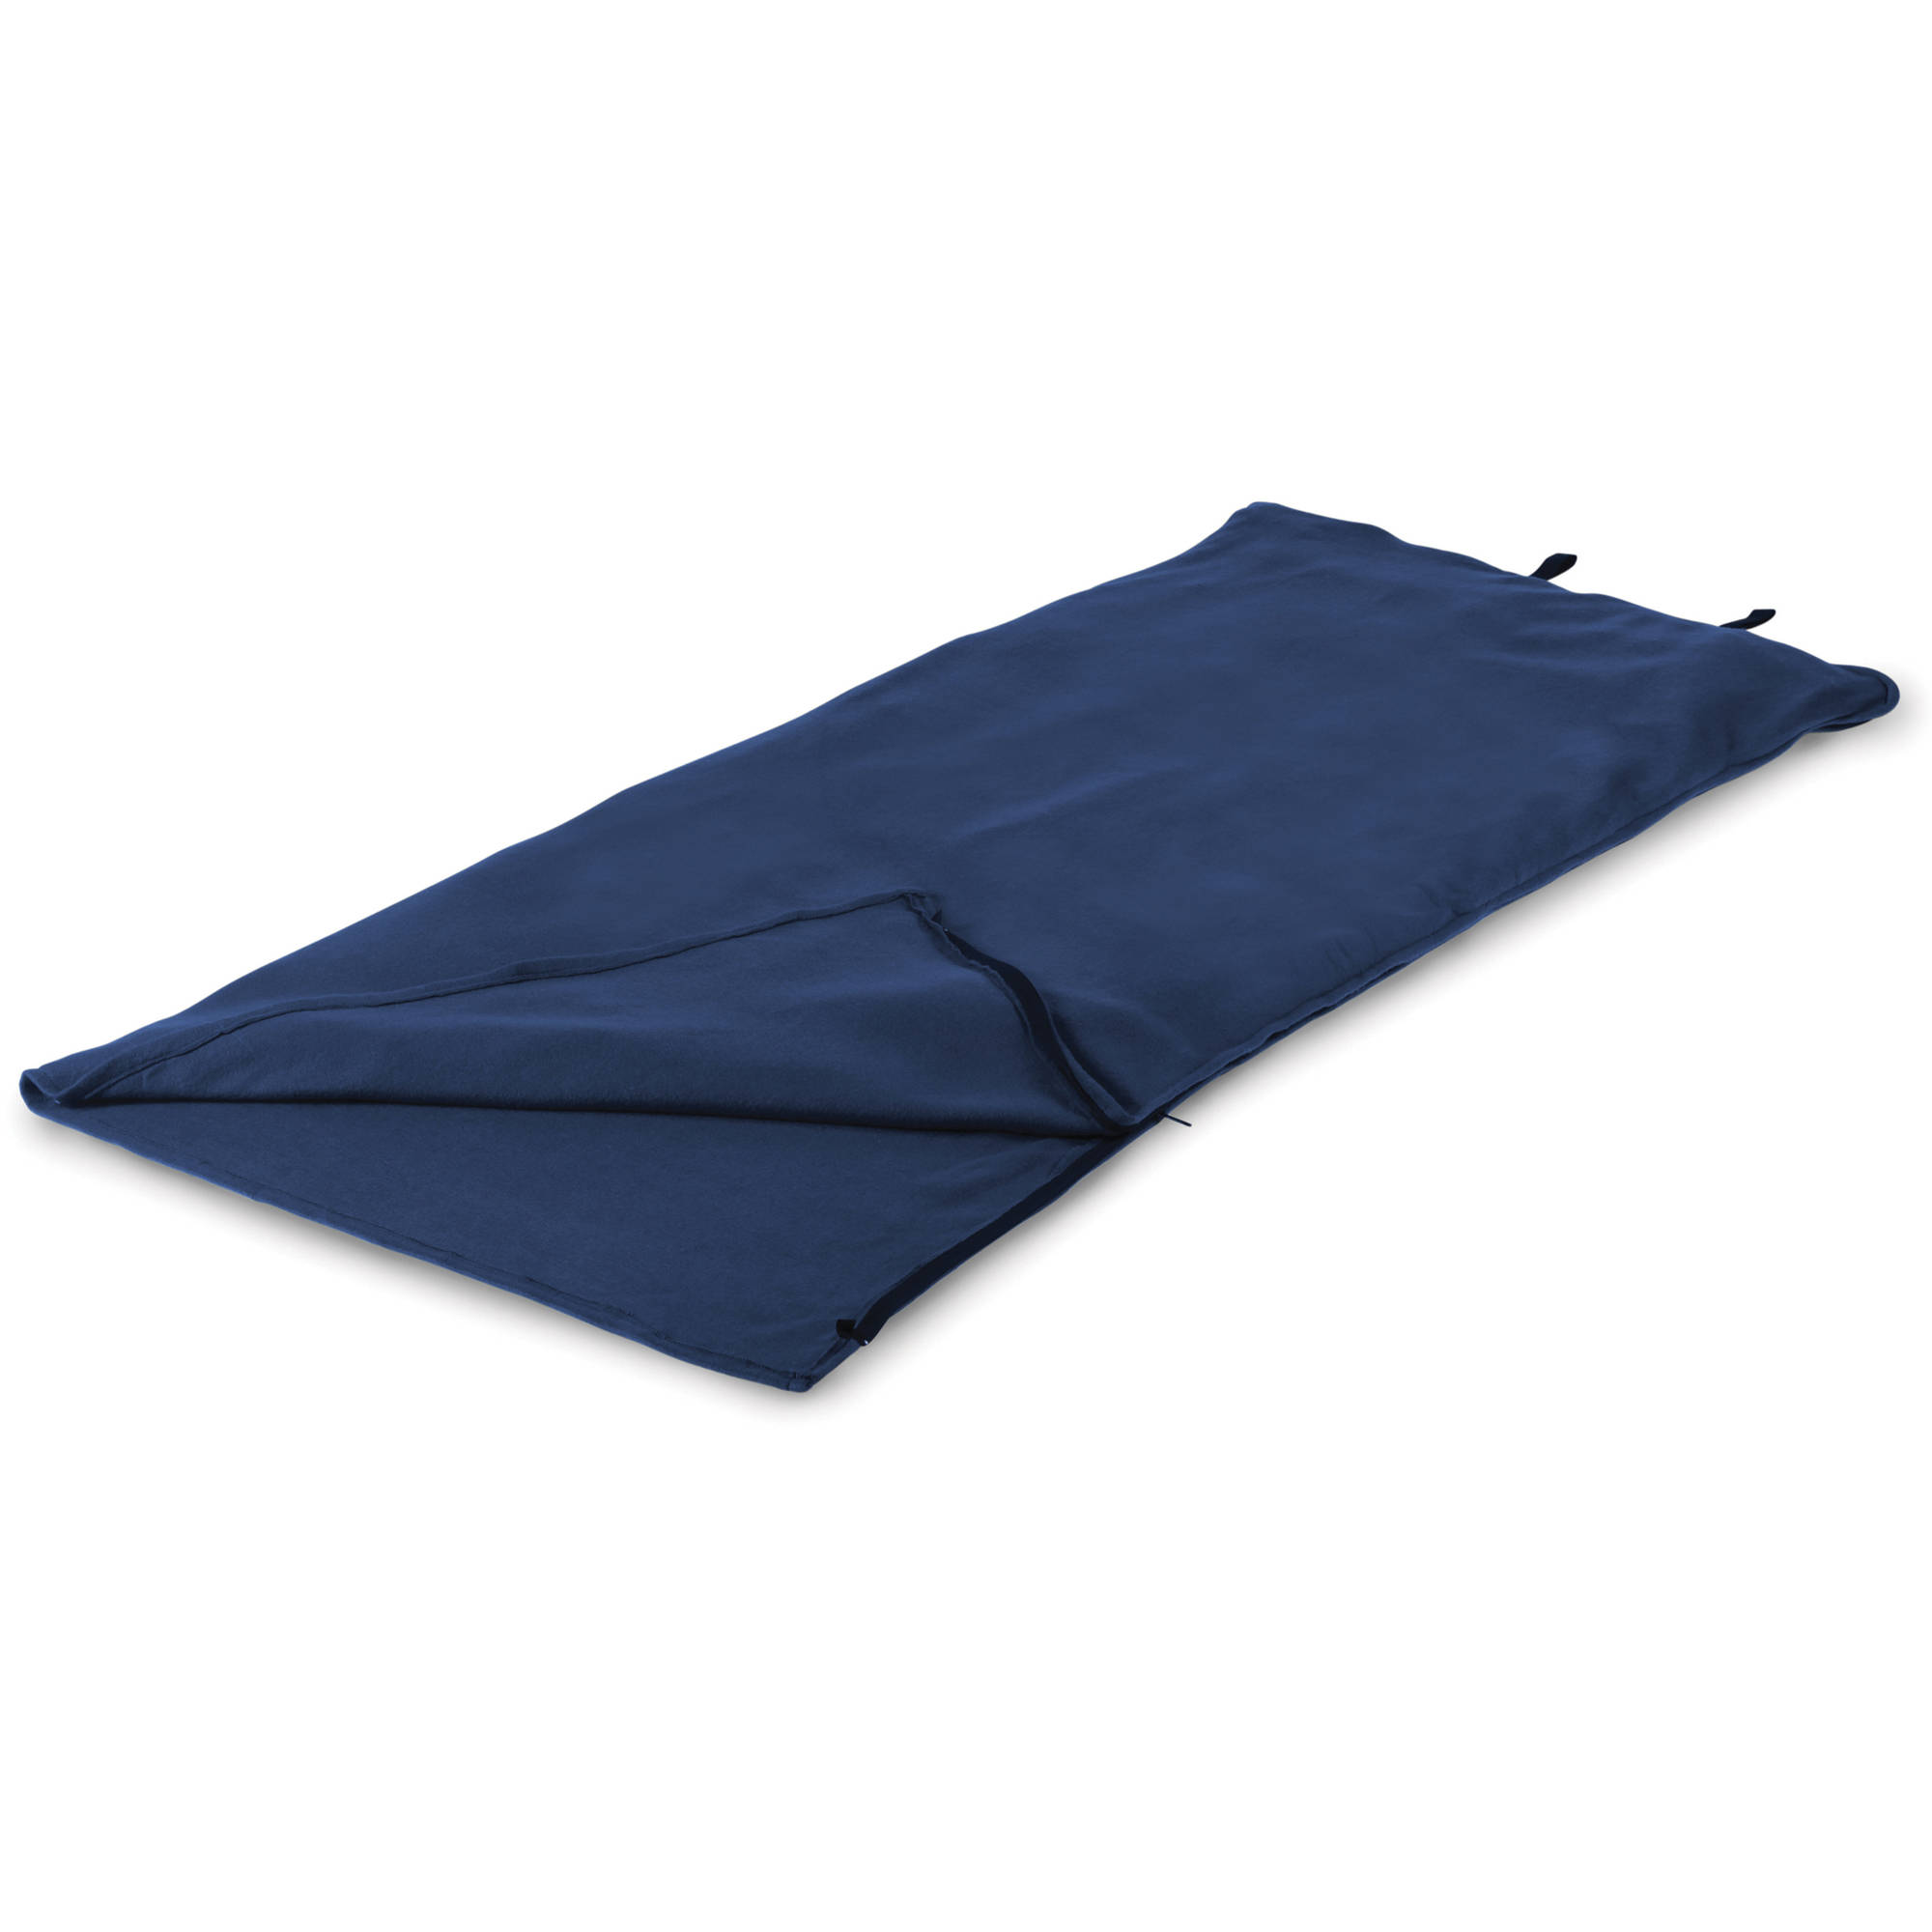 Stansport Fleece Sleeping Bag Blue 32 in x 75 in by Stansport